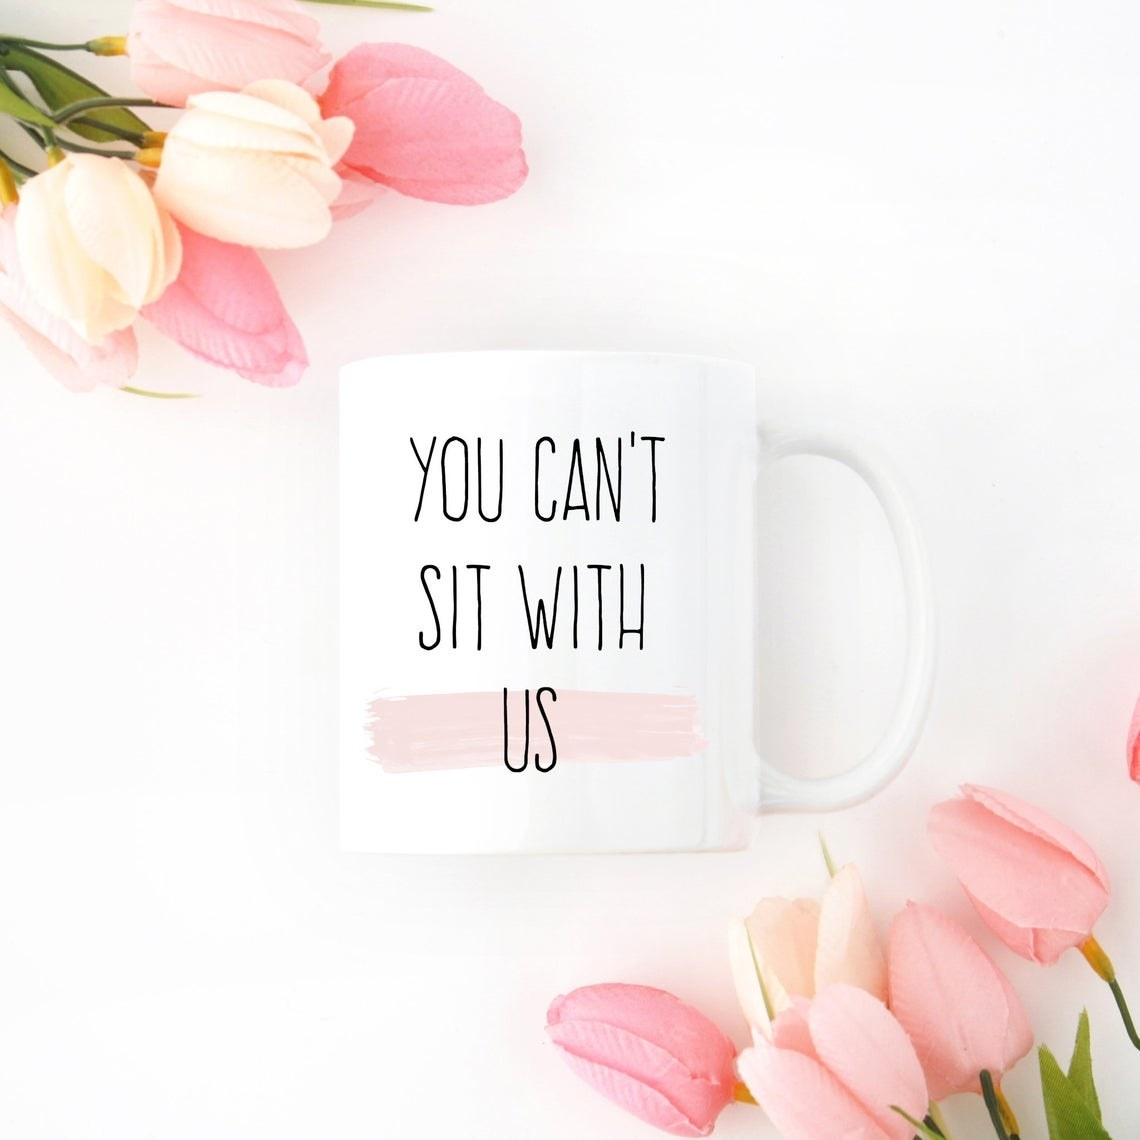 A coffee mug with You can't sit with us written on the front